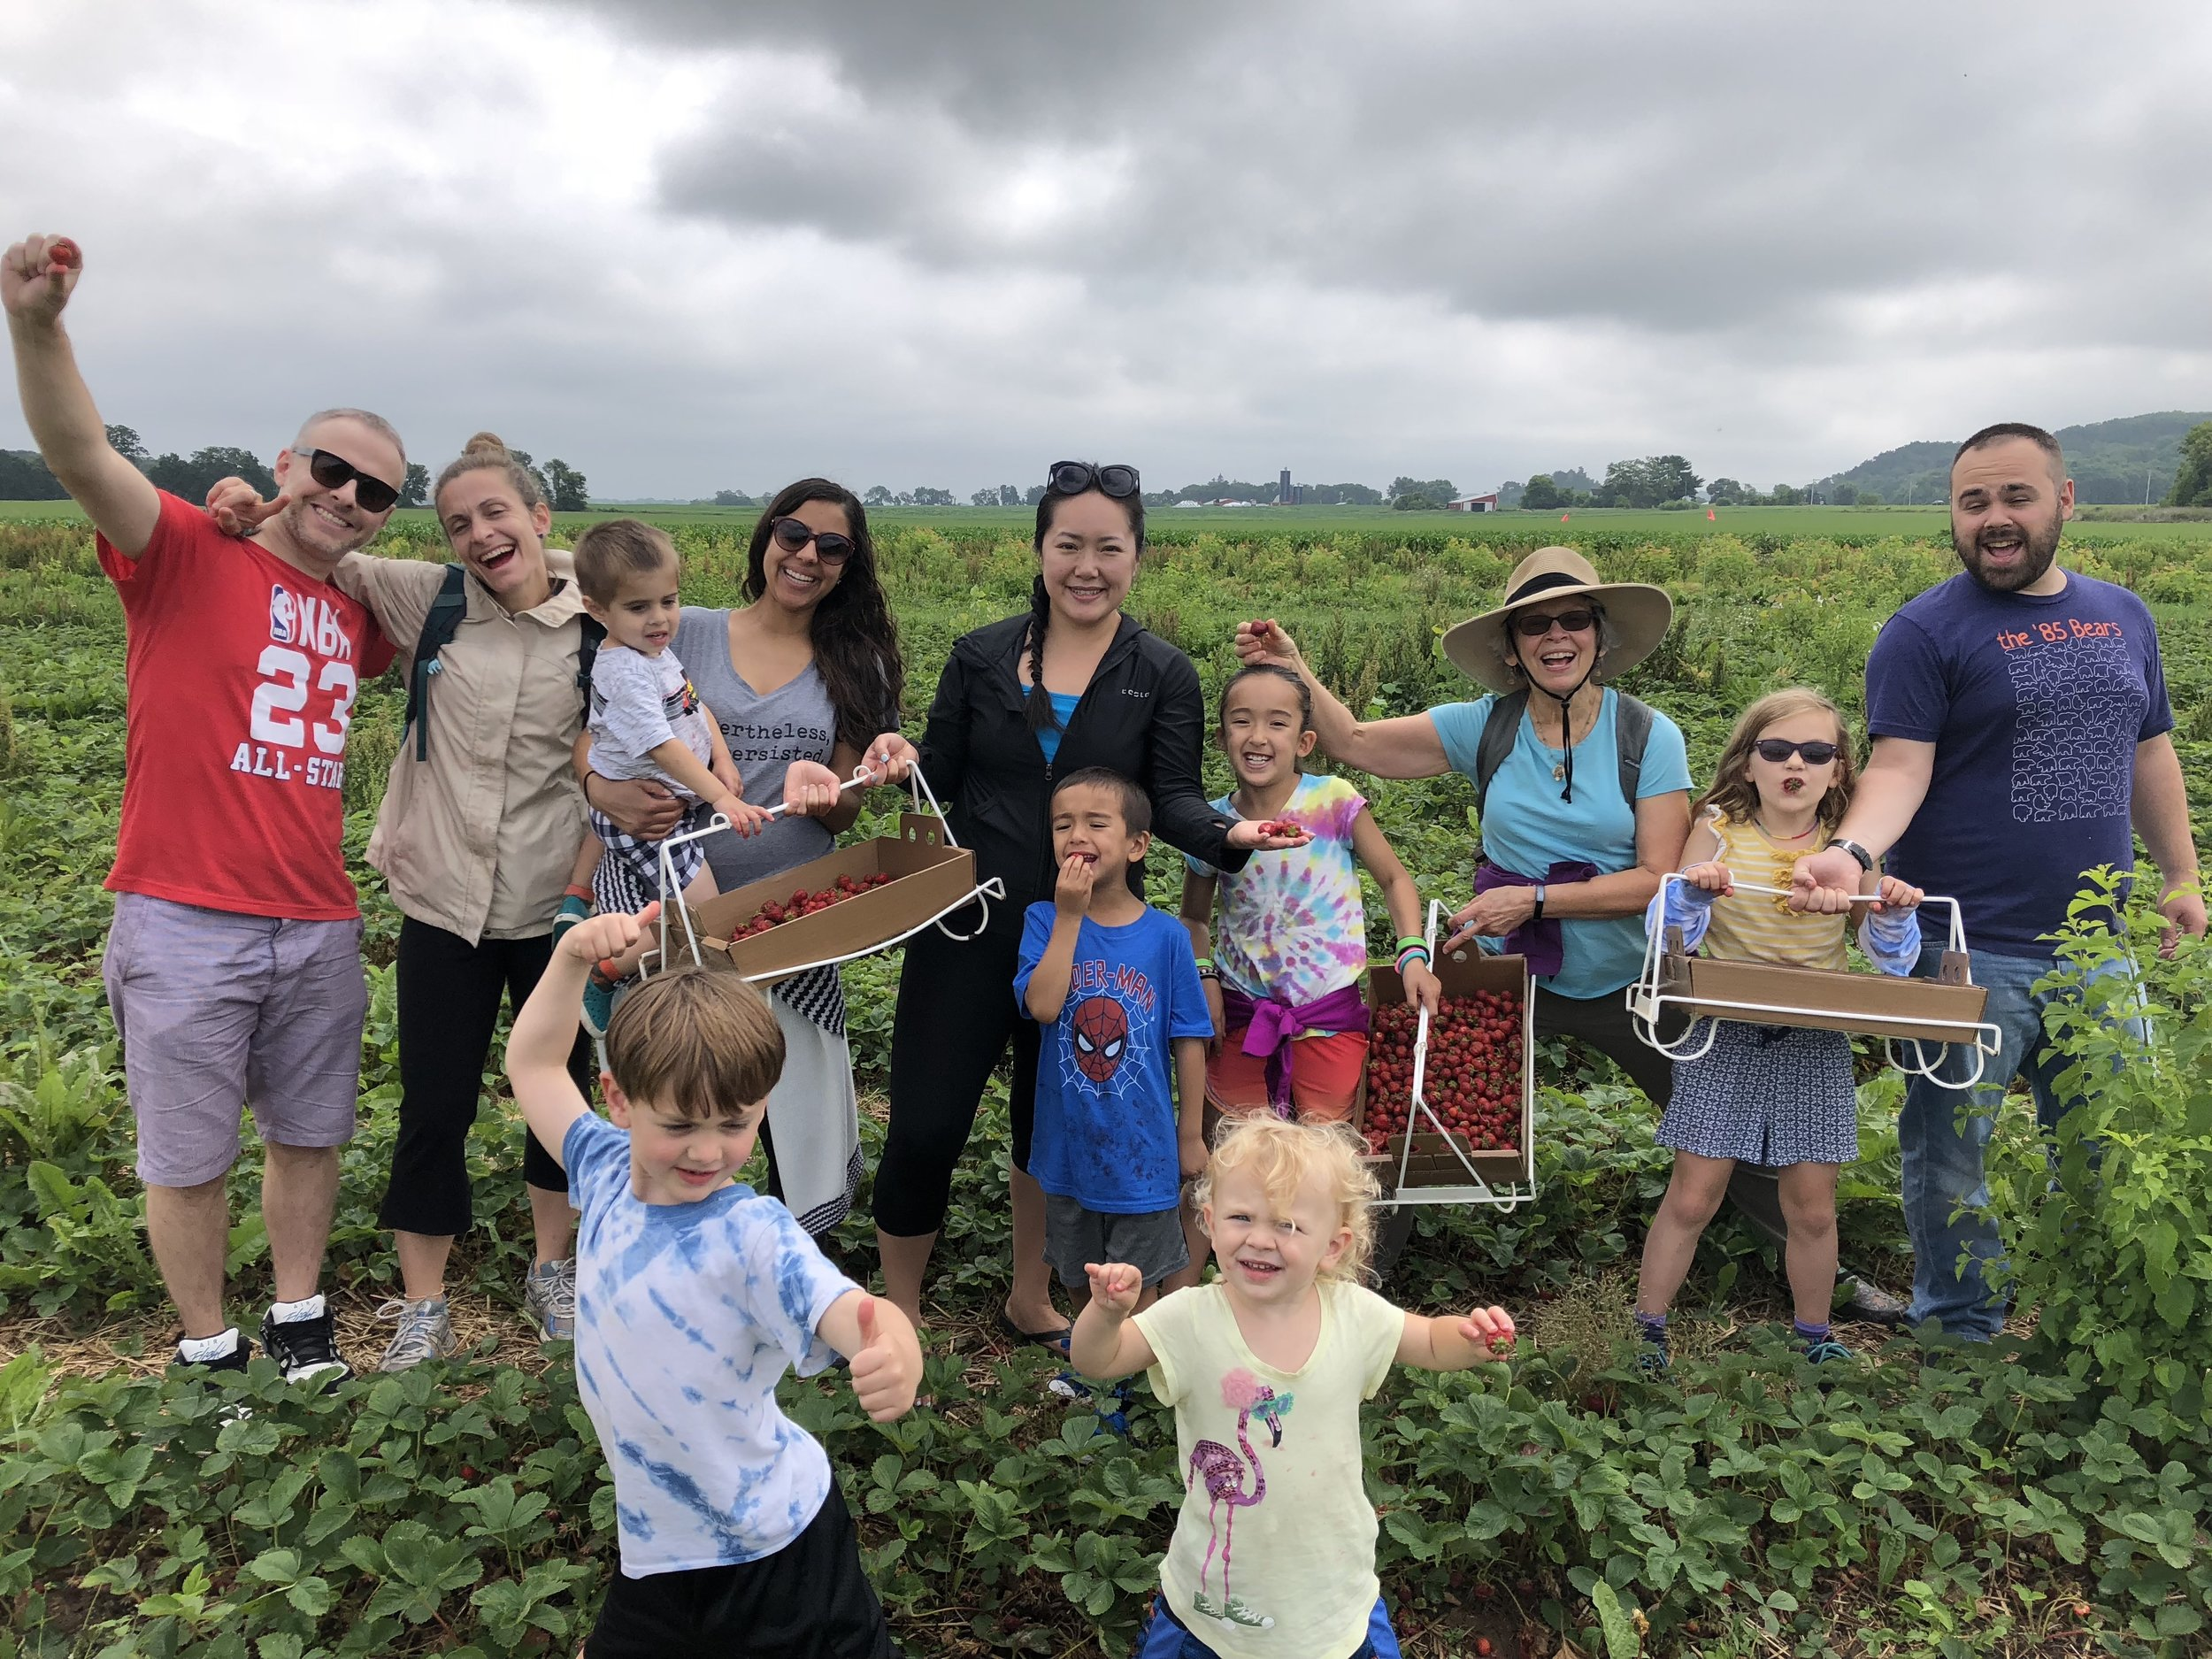 Strawberry picking with all of the cousins!